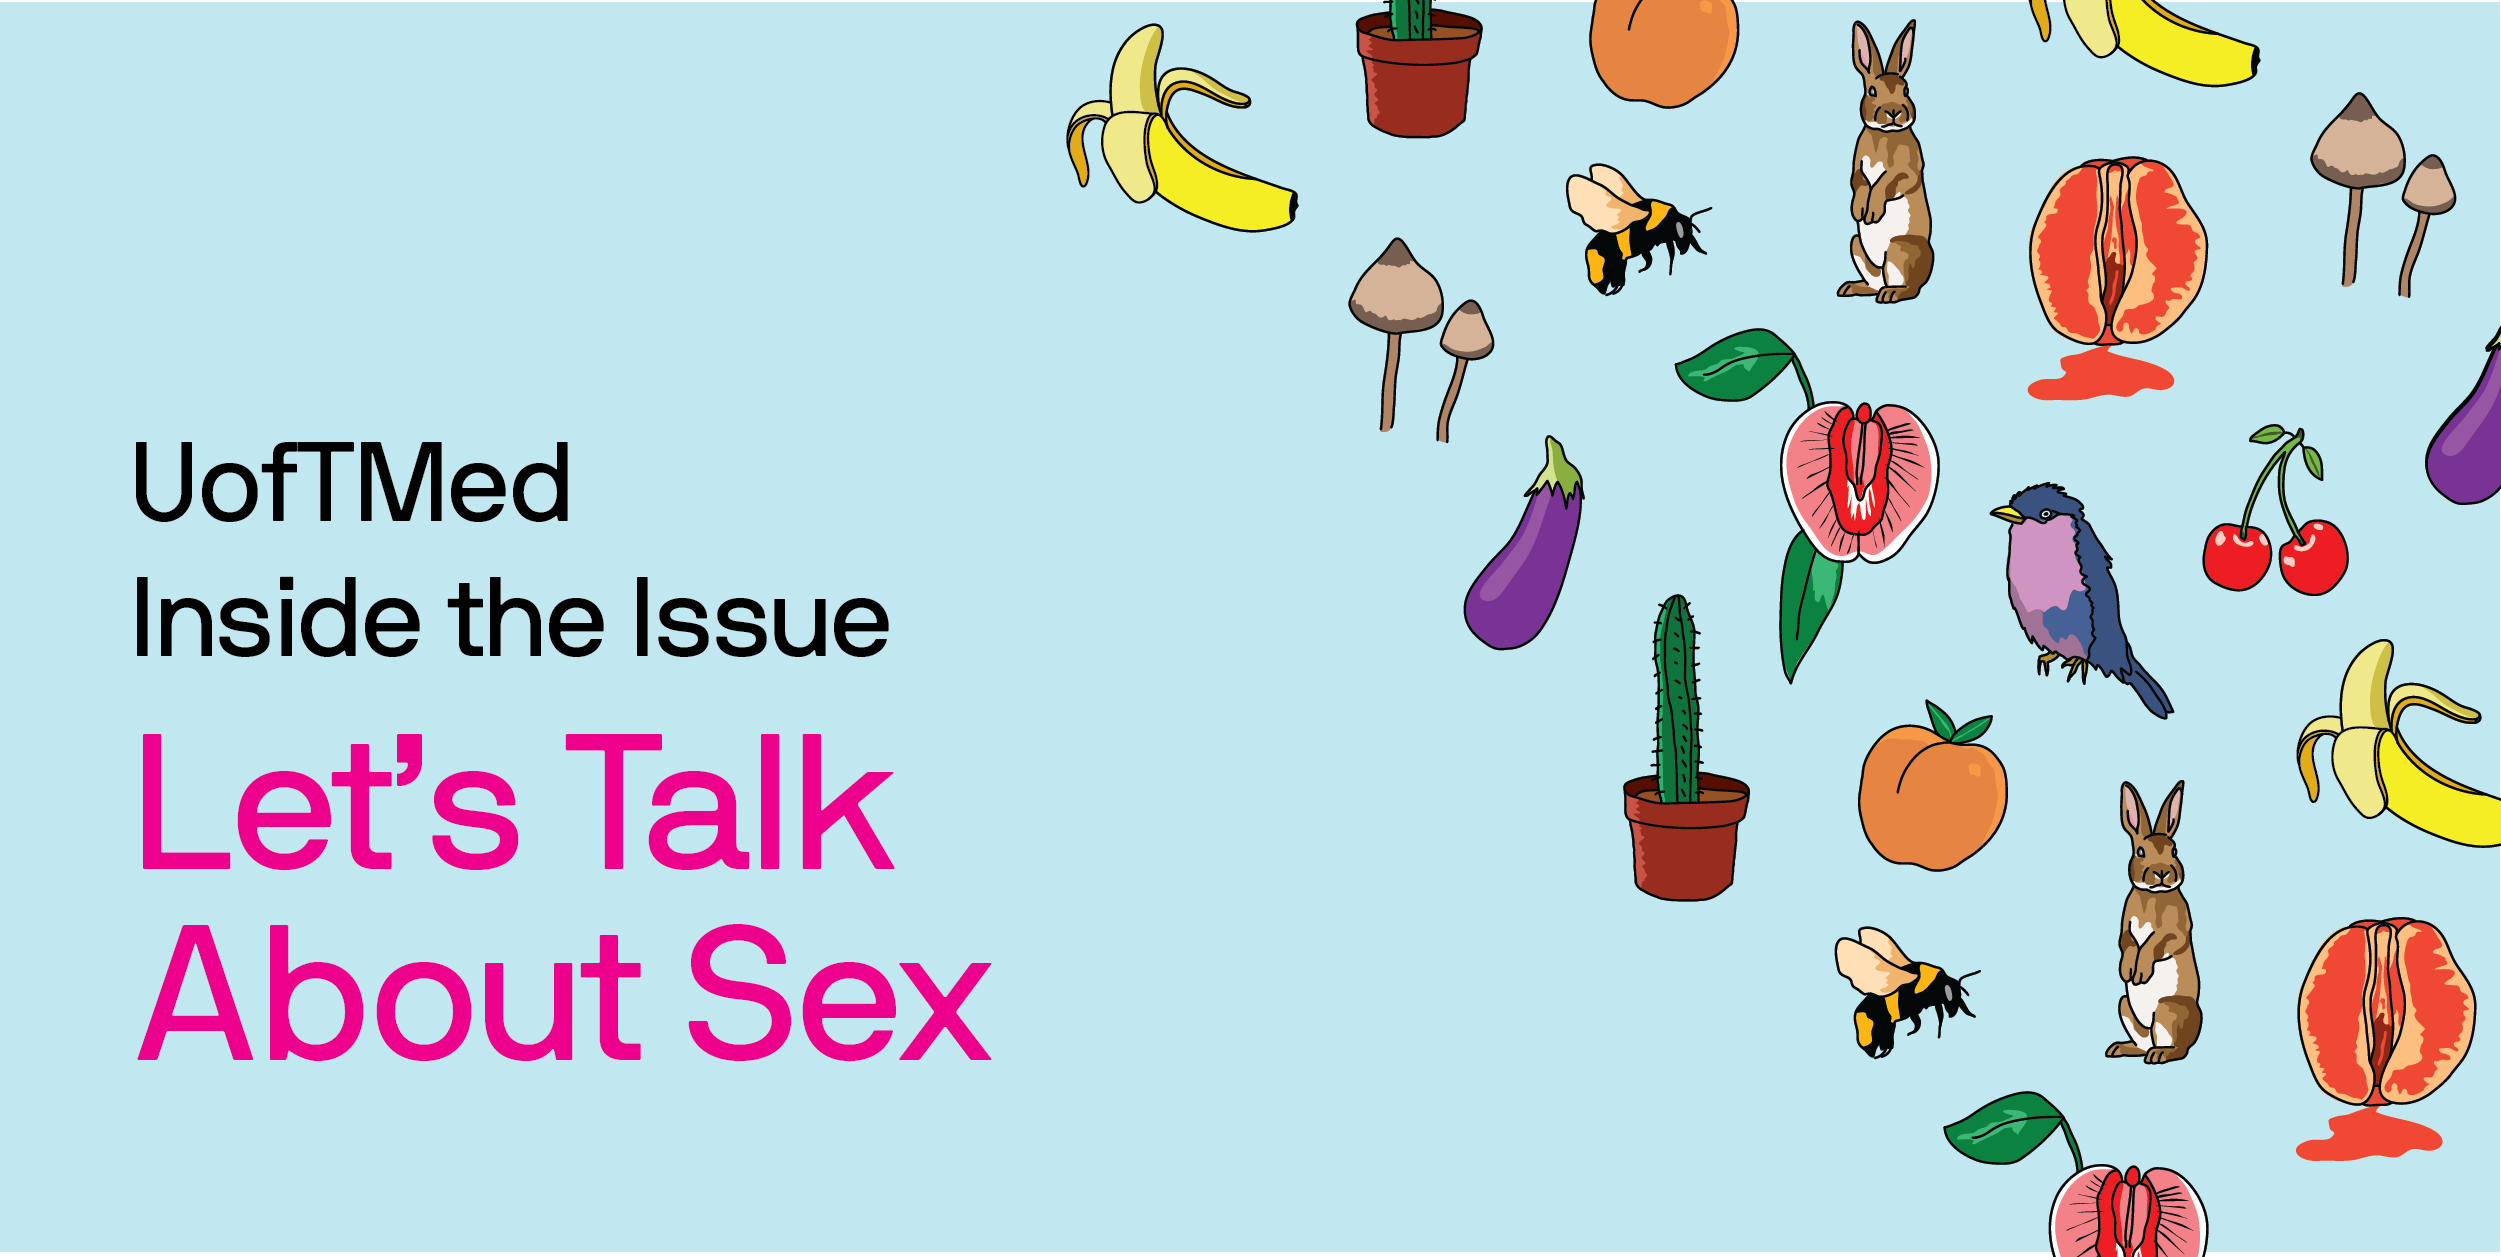 UofTMed Inside the Issue: Let's Talk About Sex